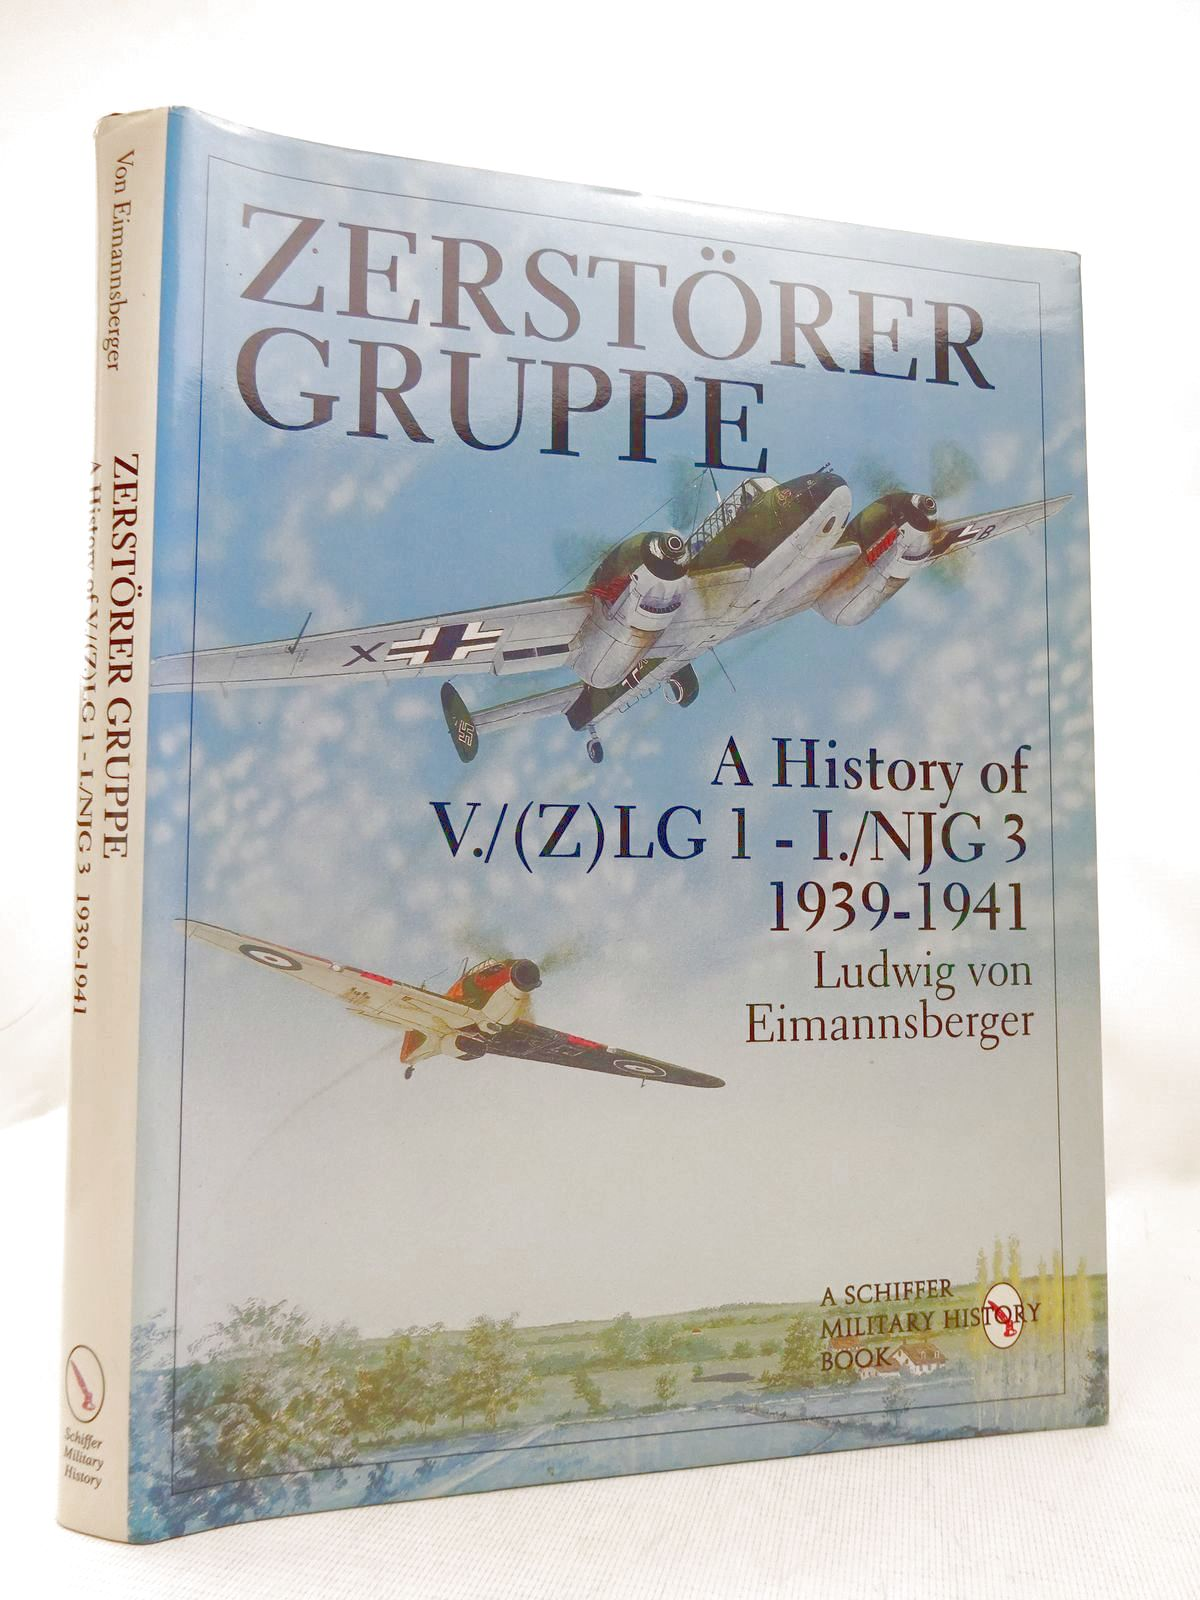 Photo of ZERSTORER GRUPPE A HISTORY OF V./(Z)LG 1 - I./NJG 3 1939-1941 written by Eimannsberger, Ludwig V. published by Schiffer Military History (STOCK CODE: 1816570)  for sale by Stella & Rose's Books